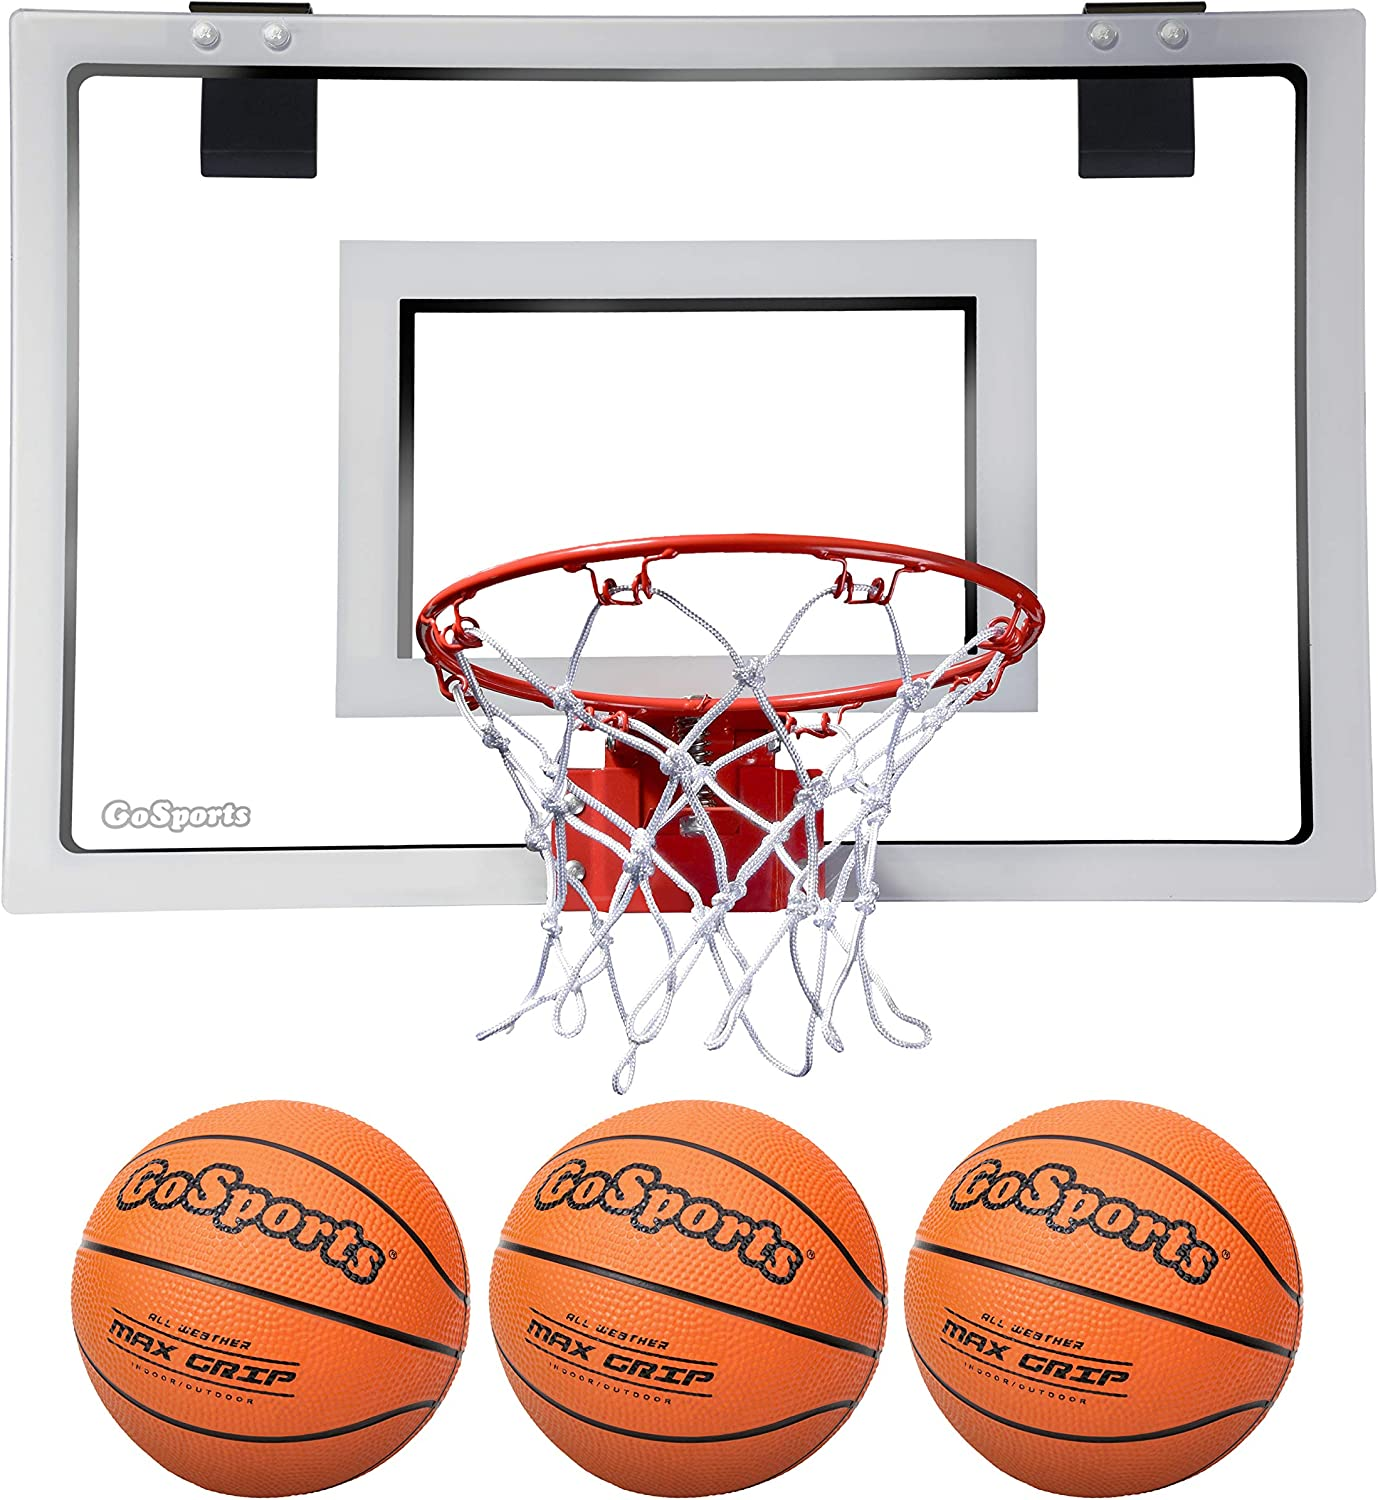 Cali Kiwi Pros Mini Basketball 9 Hoop//net for Wall Mount Hand Pump and Bonus 8 Mini basketballs-Indoor Basketball for Kids-Home and Party Games Single Panel Junior Size in American red Cedar